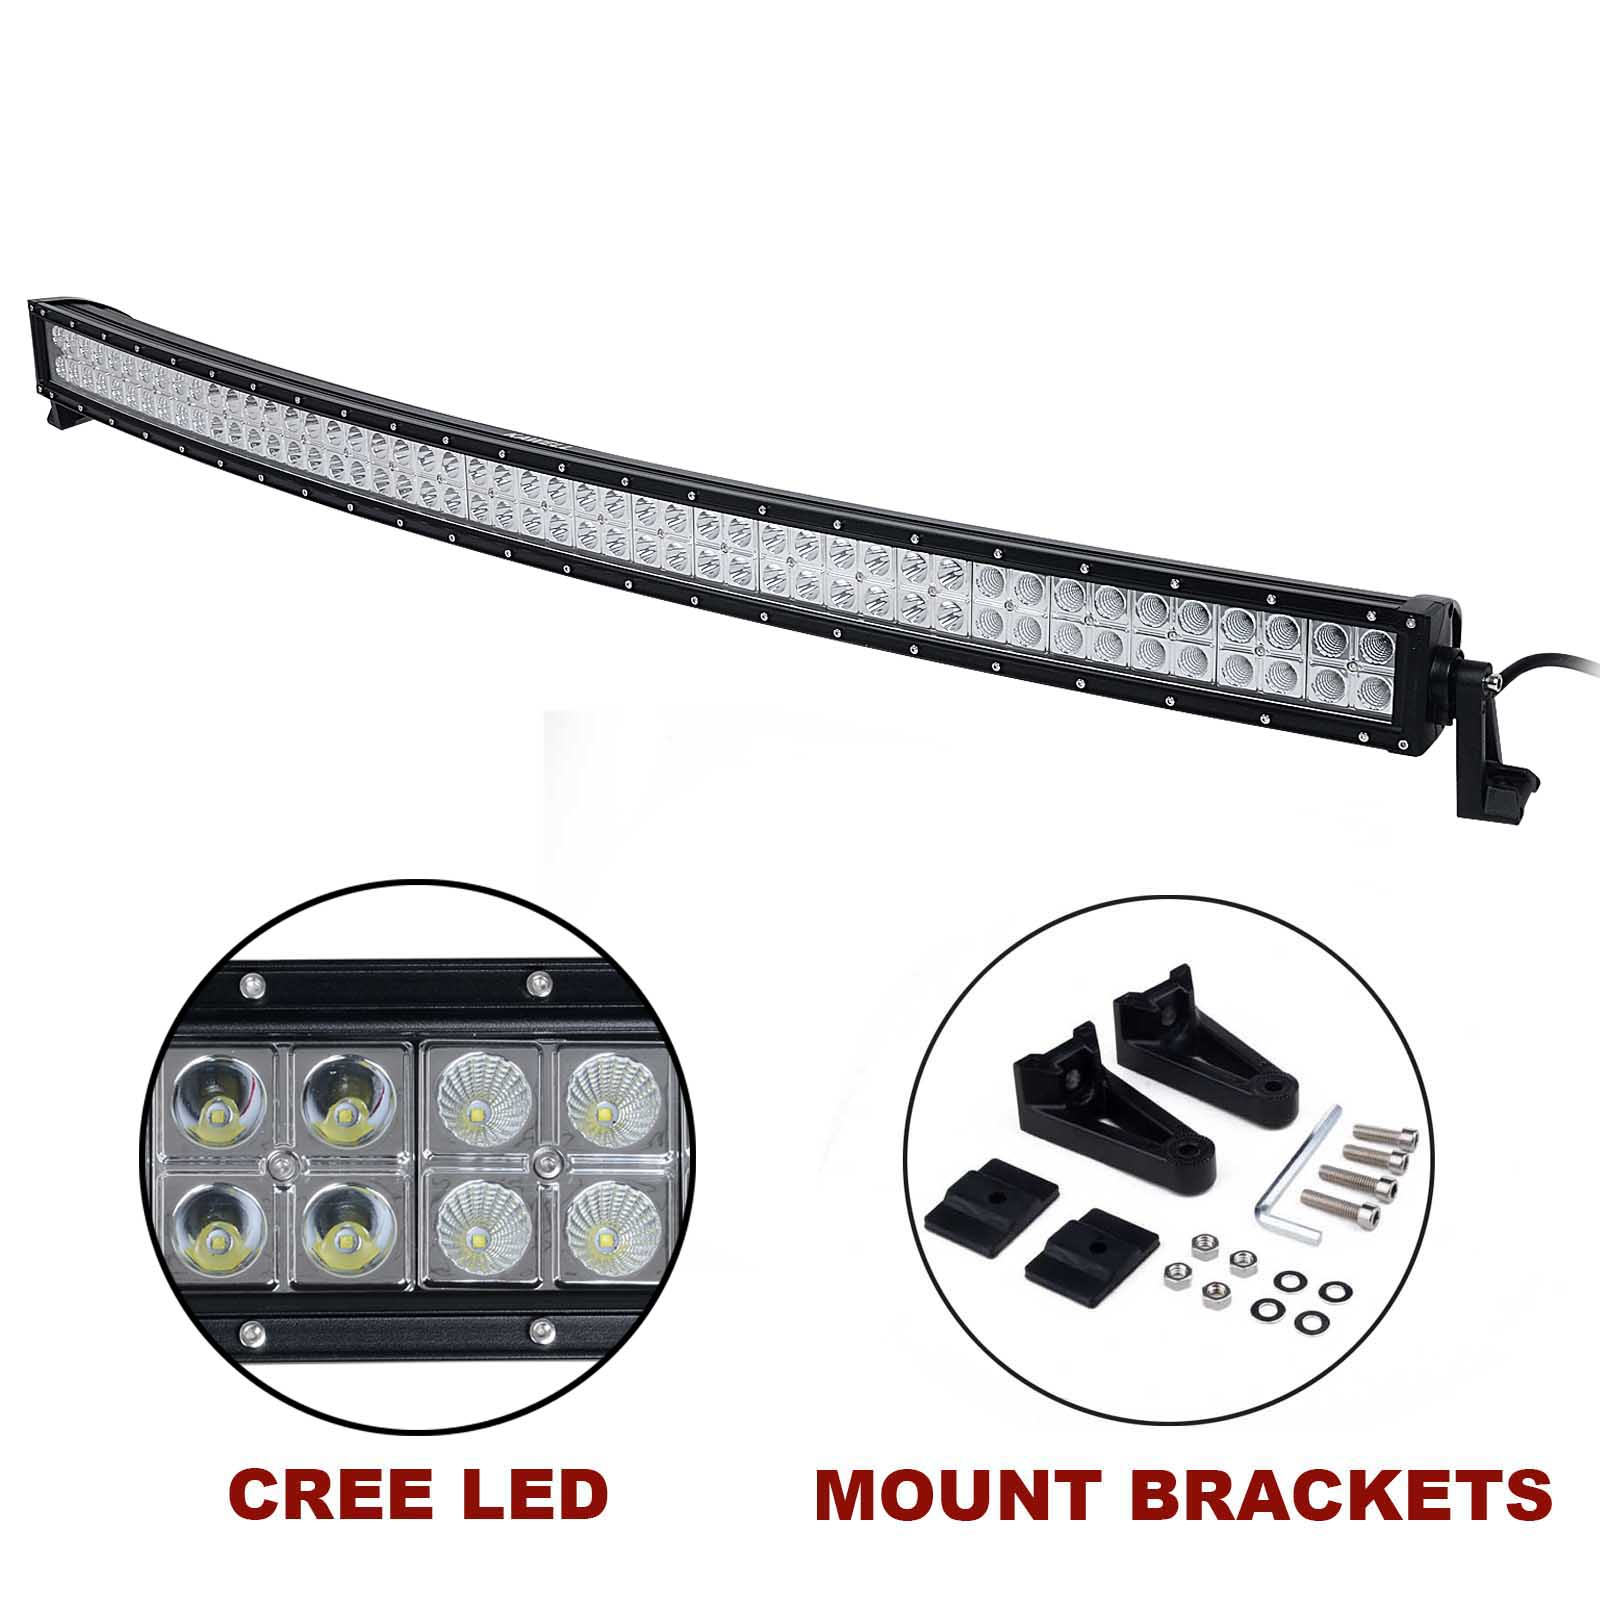 kawell u00ae 50 u0026quot  288w cree curved spot and flood combo beam led light bar off road led worklamp for